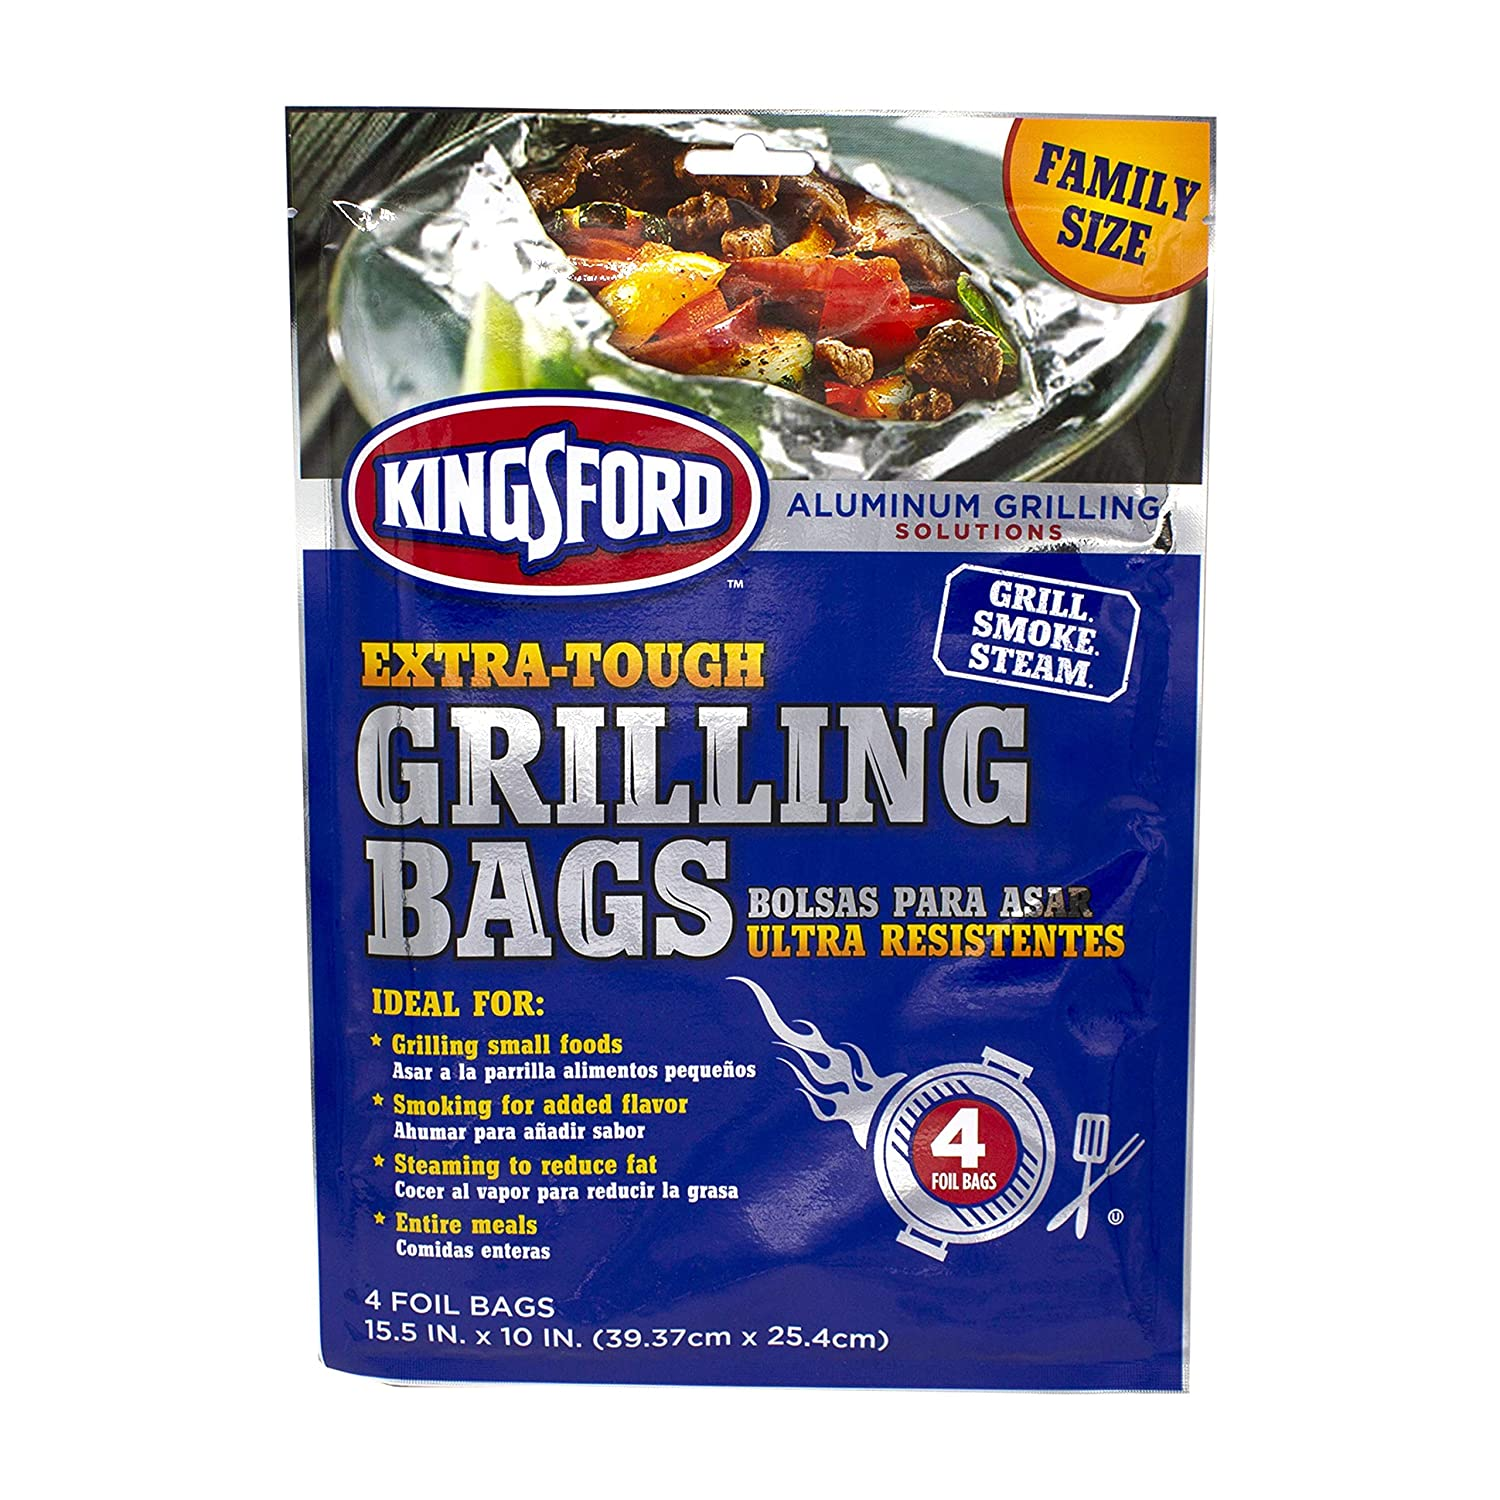 Oven and Grills Easy Use 8 Pack Sealapack Foil Food Bags For BBQ